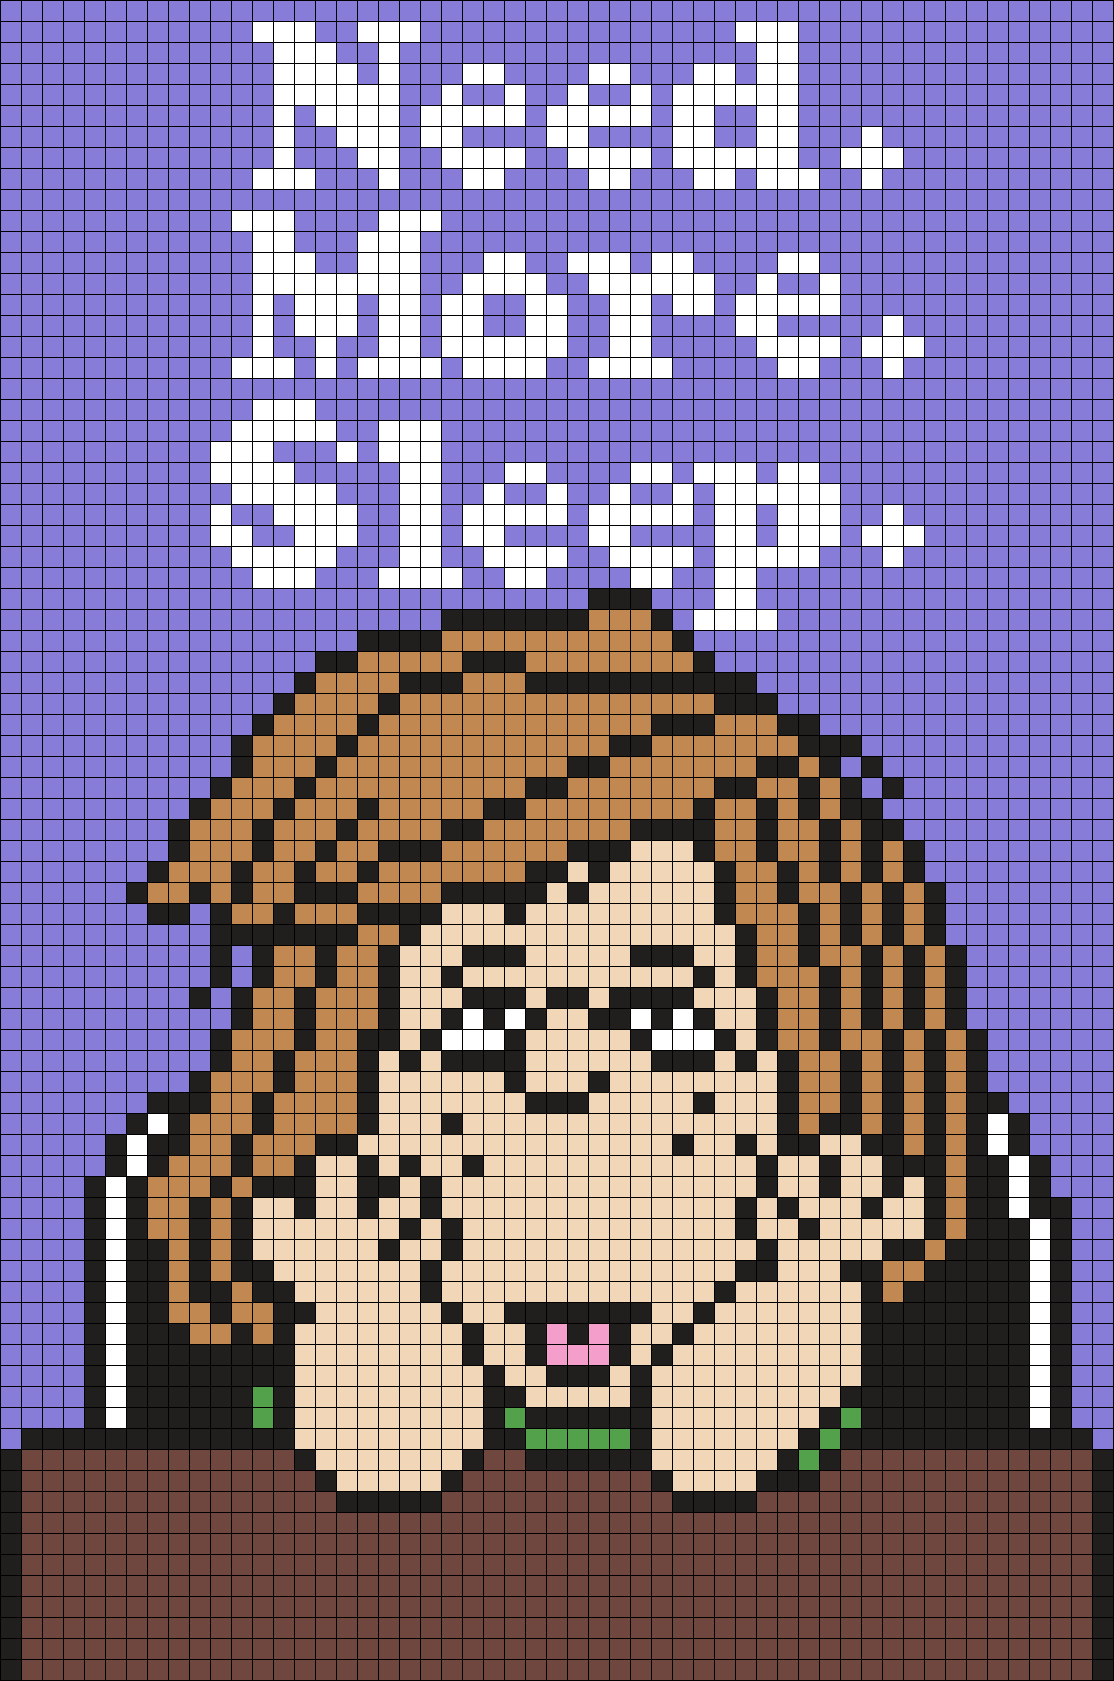 Peppermint Patty From Peanuts Need More Sleep Poster